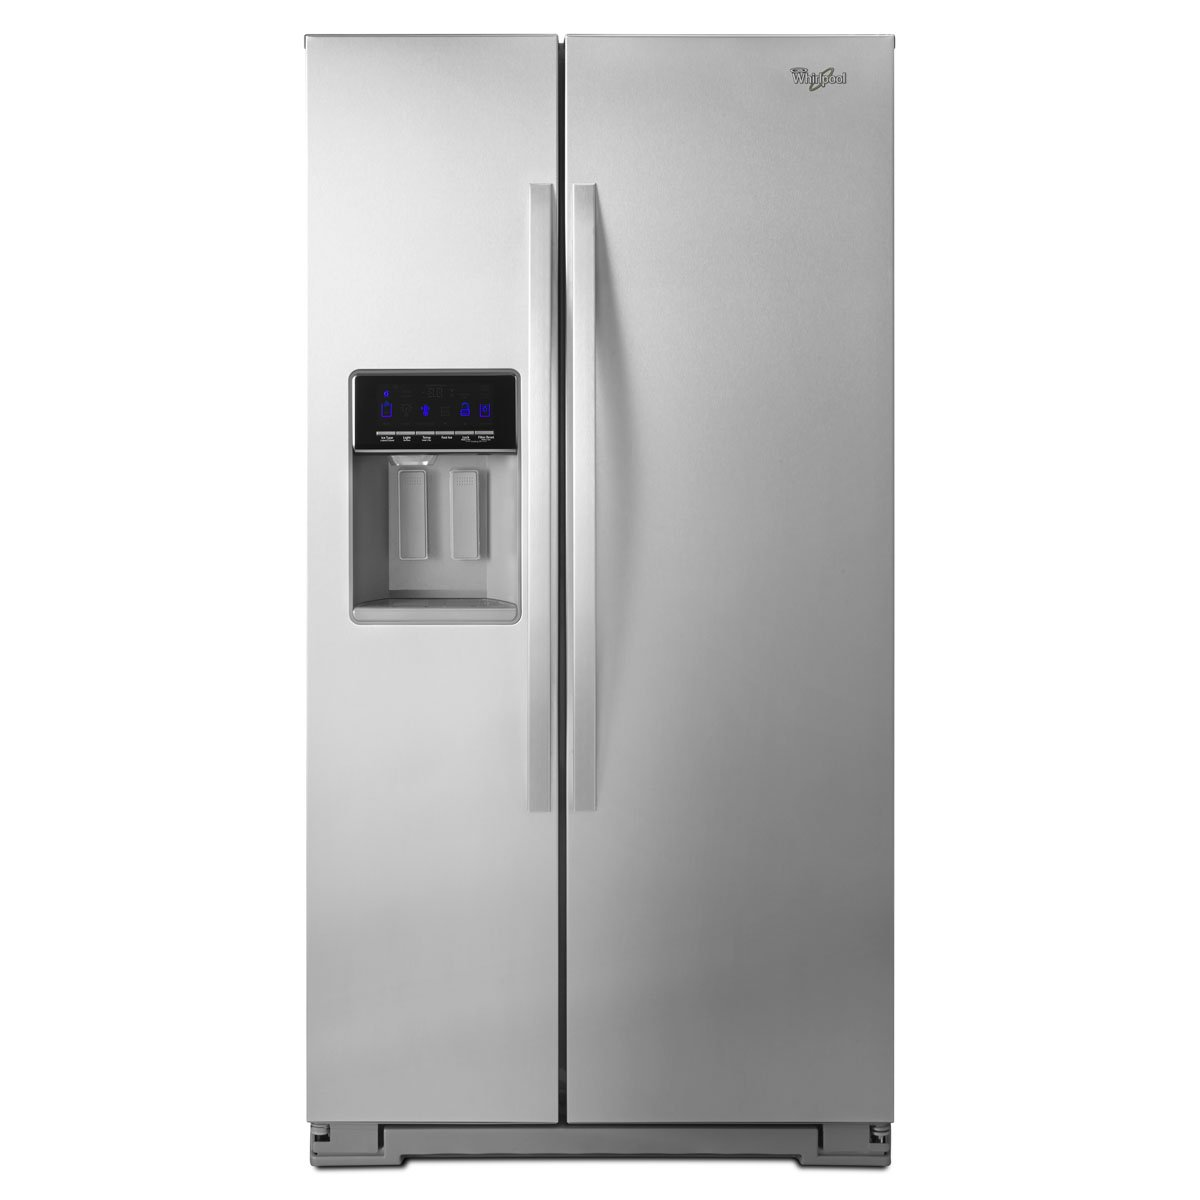 Refrigerador Whirlpool Side By Side 21 Pies Acero